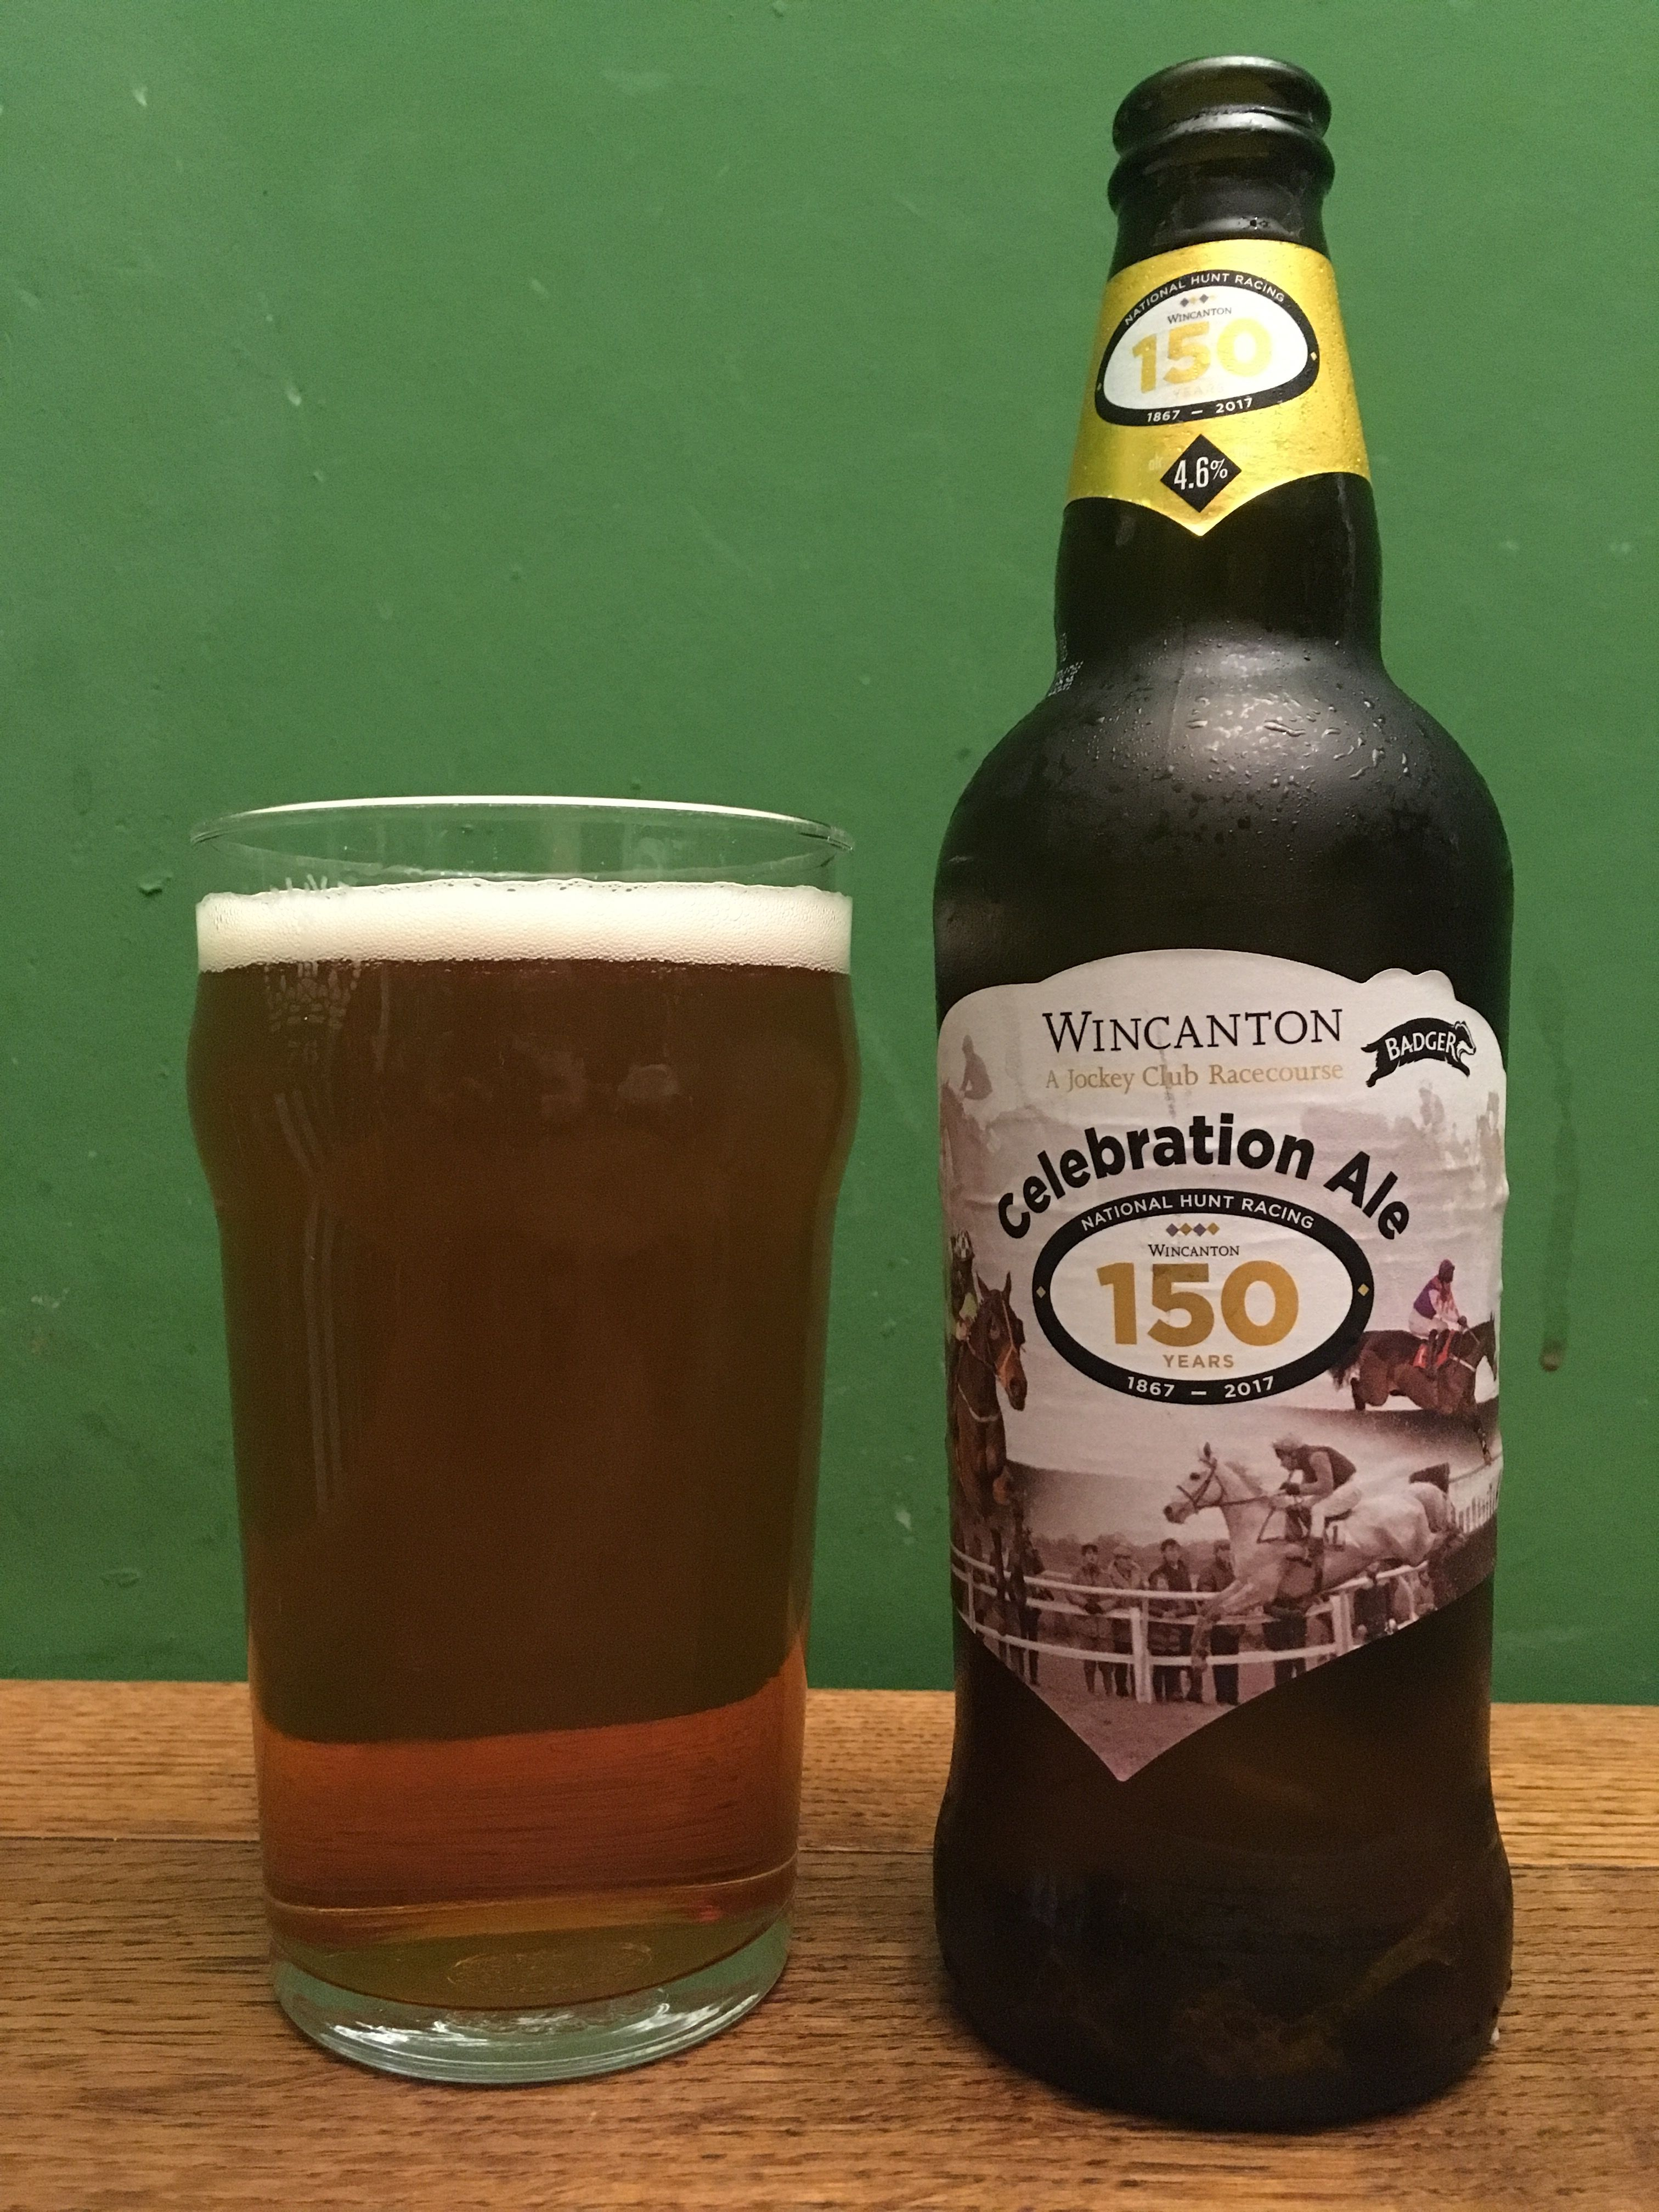 Wincanton Celebration Ale By Badger Brewery In Dorset Uk Nice